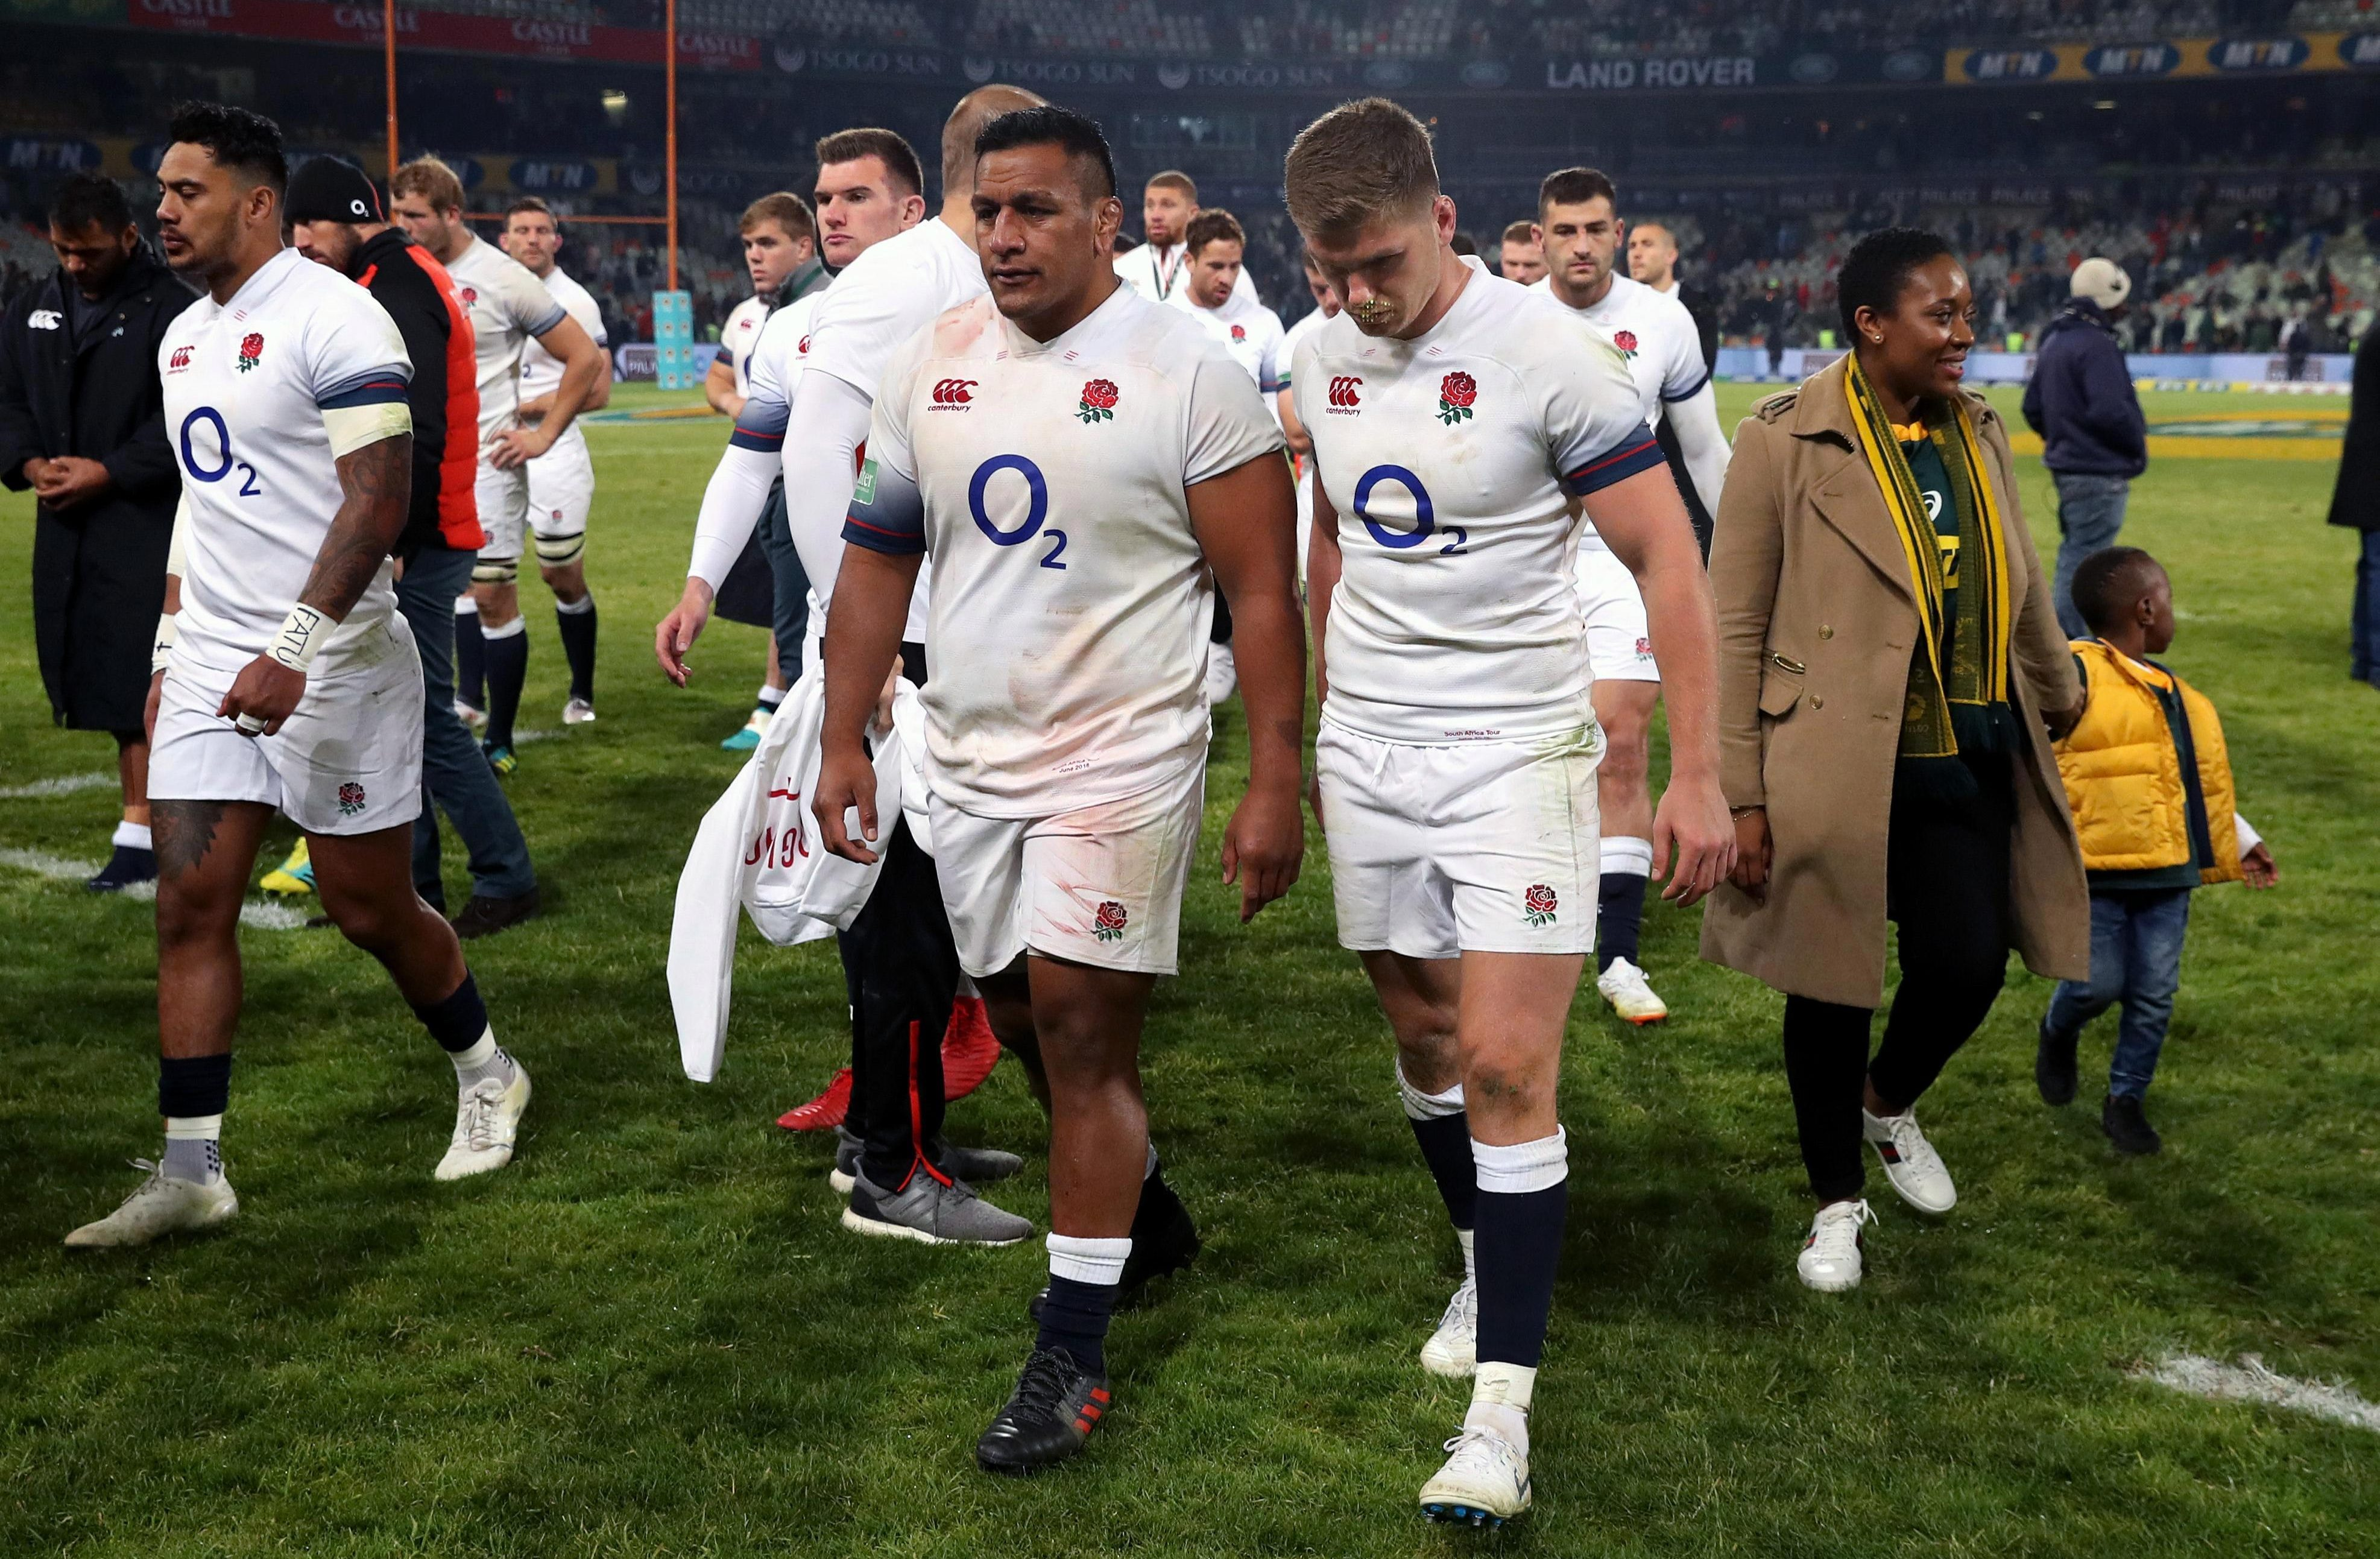 England blew another lead as they lost to South Africa again last weekend